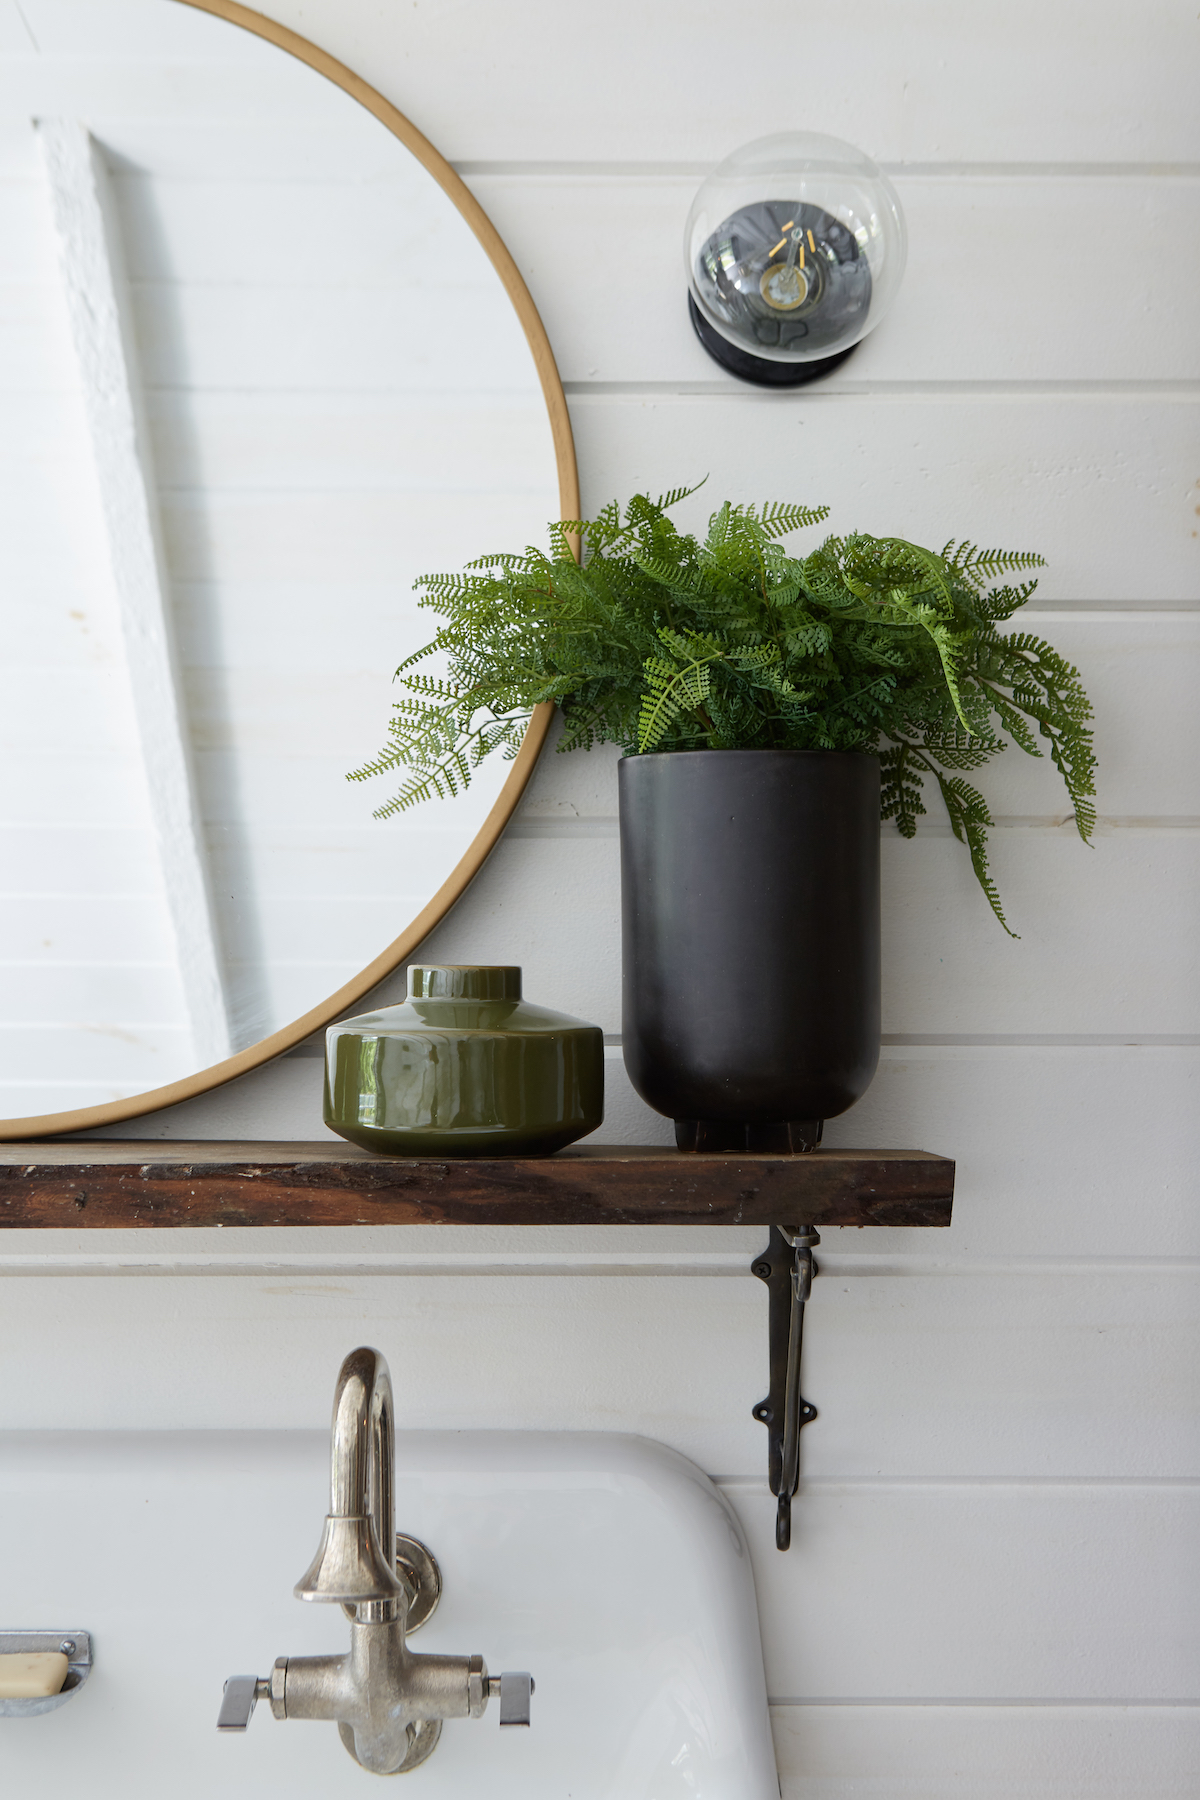 creating personal oasis how escape without actually escaping leanne target manila cylinder drum accent table brass round decorative wall mirror olive green vase fern black pot